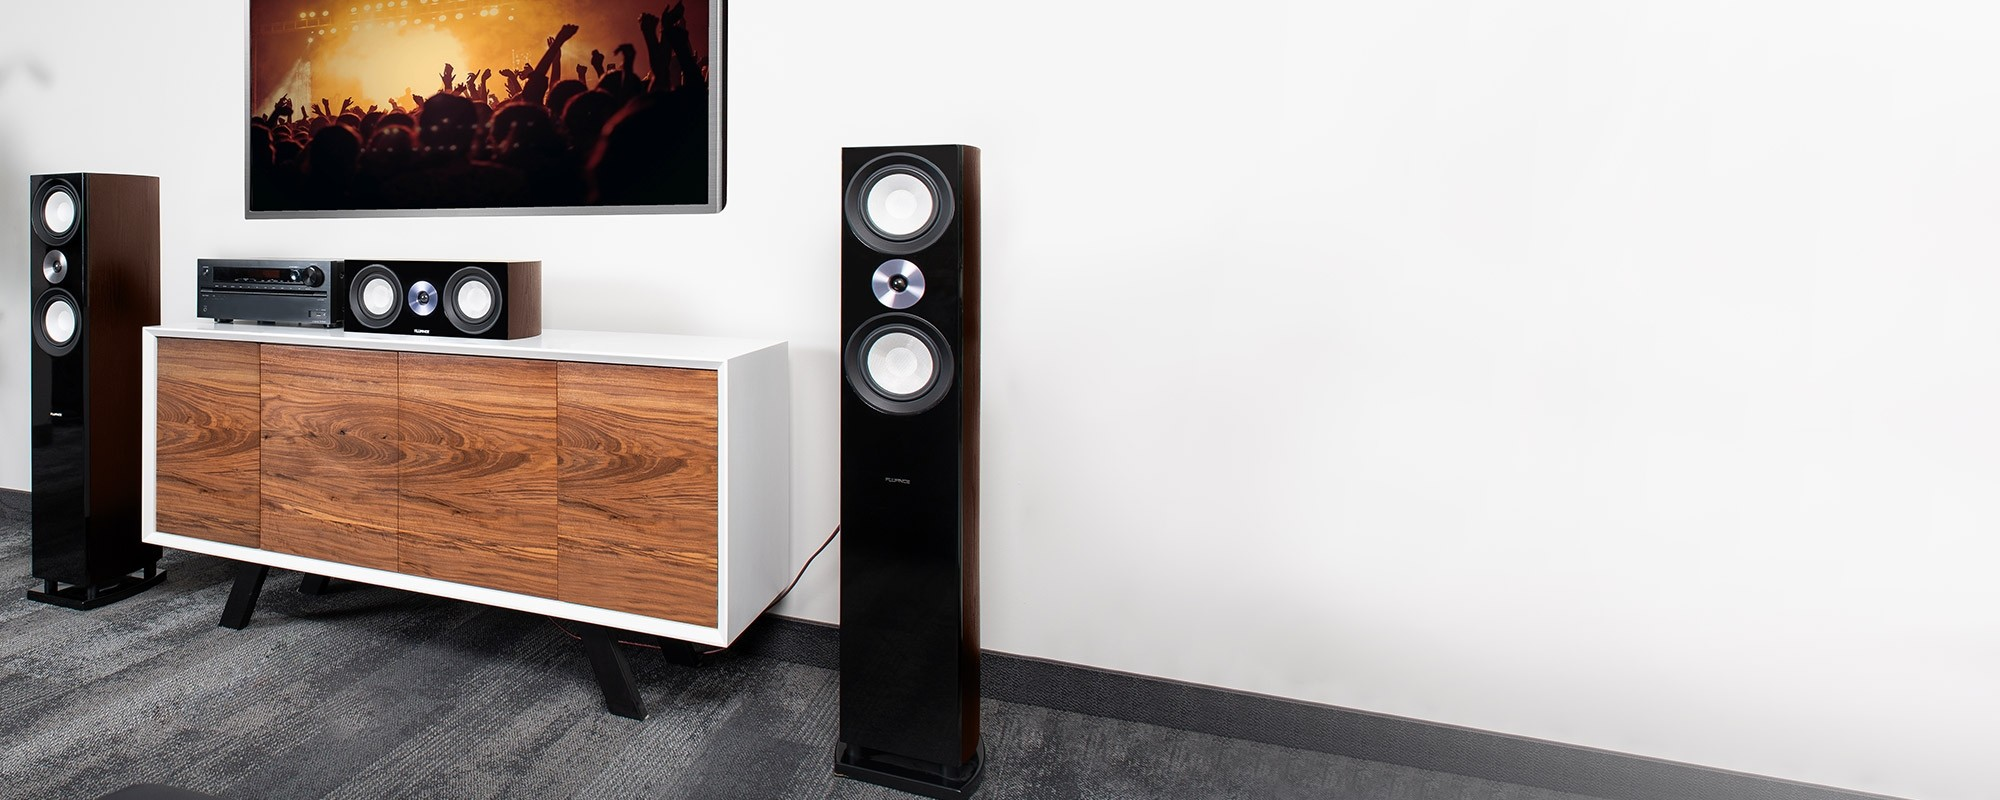 Reference Series Surround Sound Home Theater 7.0 Channel Speaker System - Lifestyle Desktop